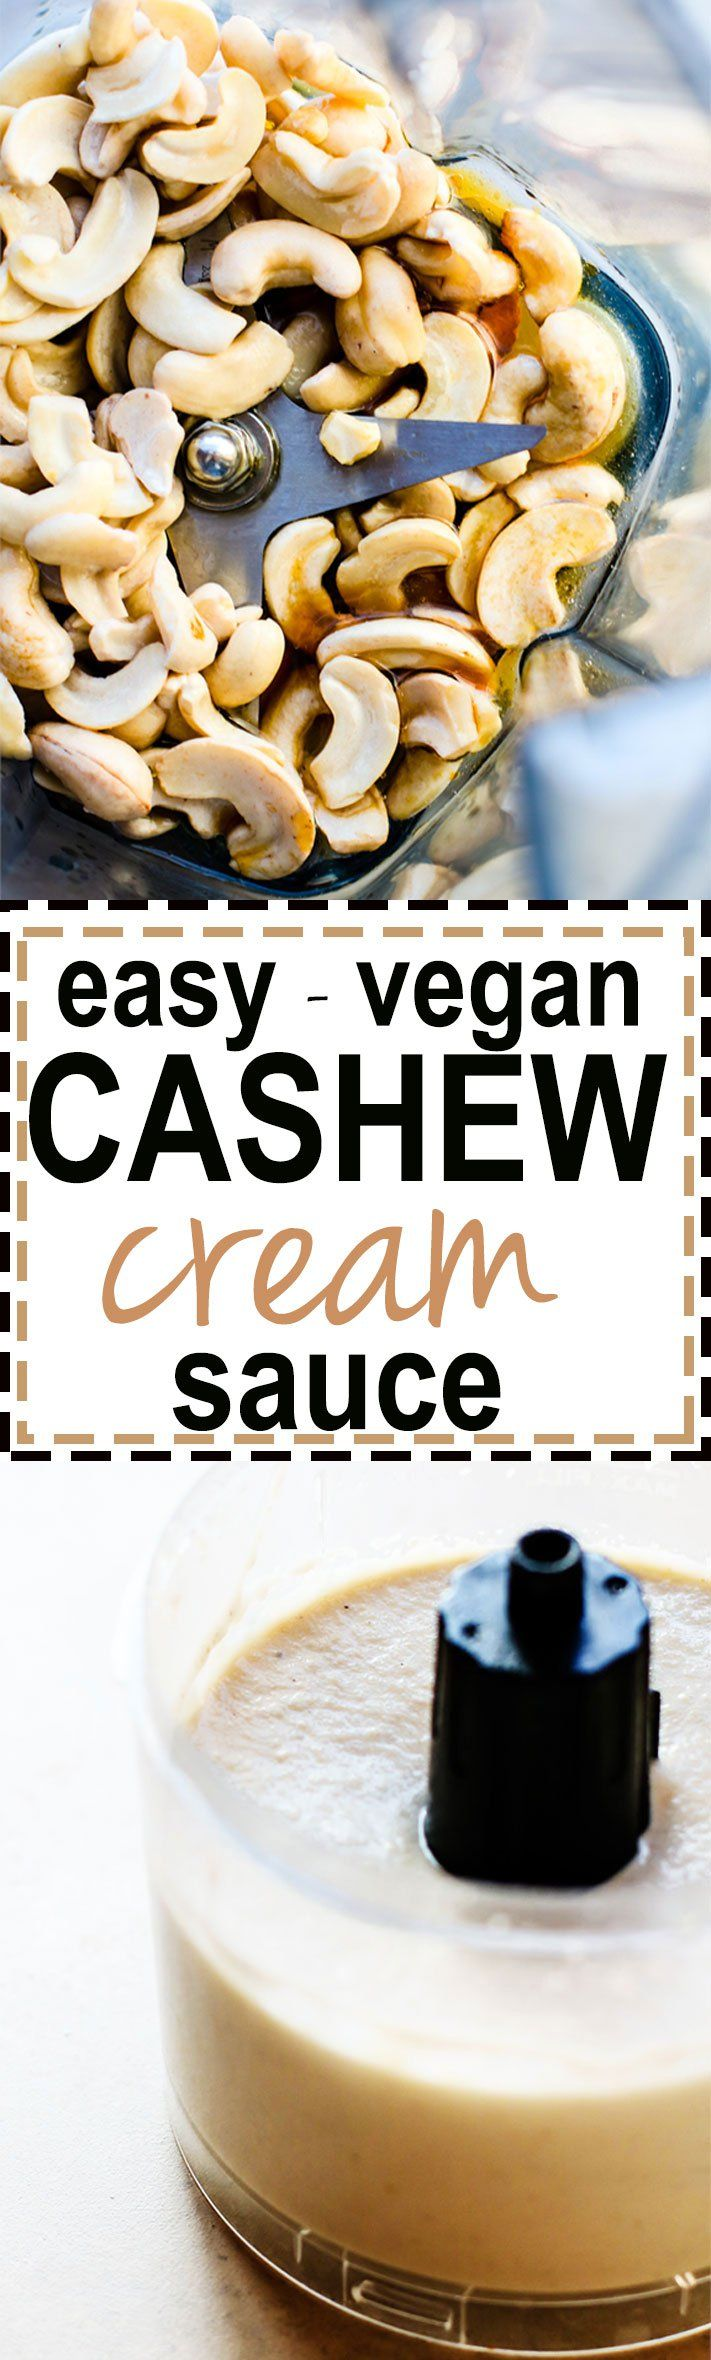 How To Make Vegan Cashew Cream Sauce. A super easy and healthy cashew cream sauce that you can make sweet or savory. Paleo Friendly.